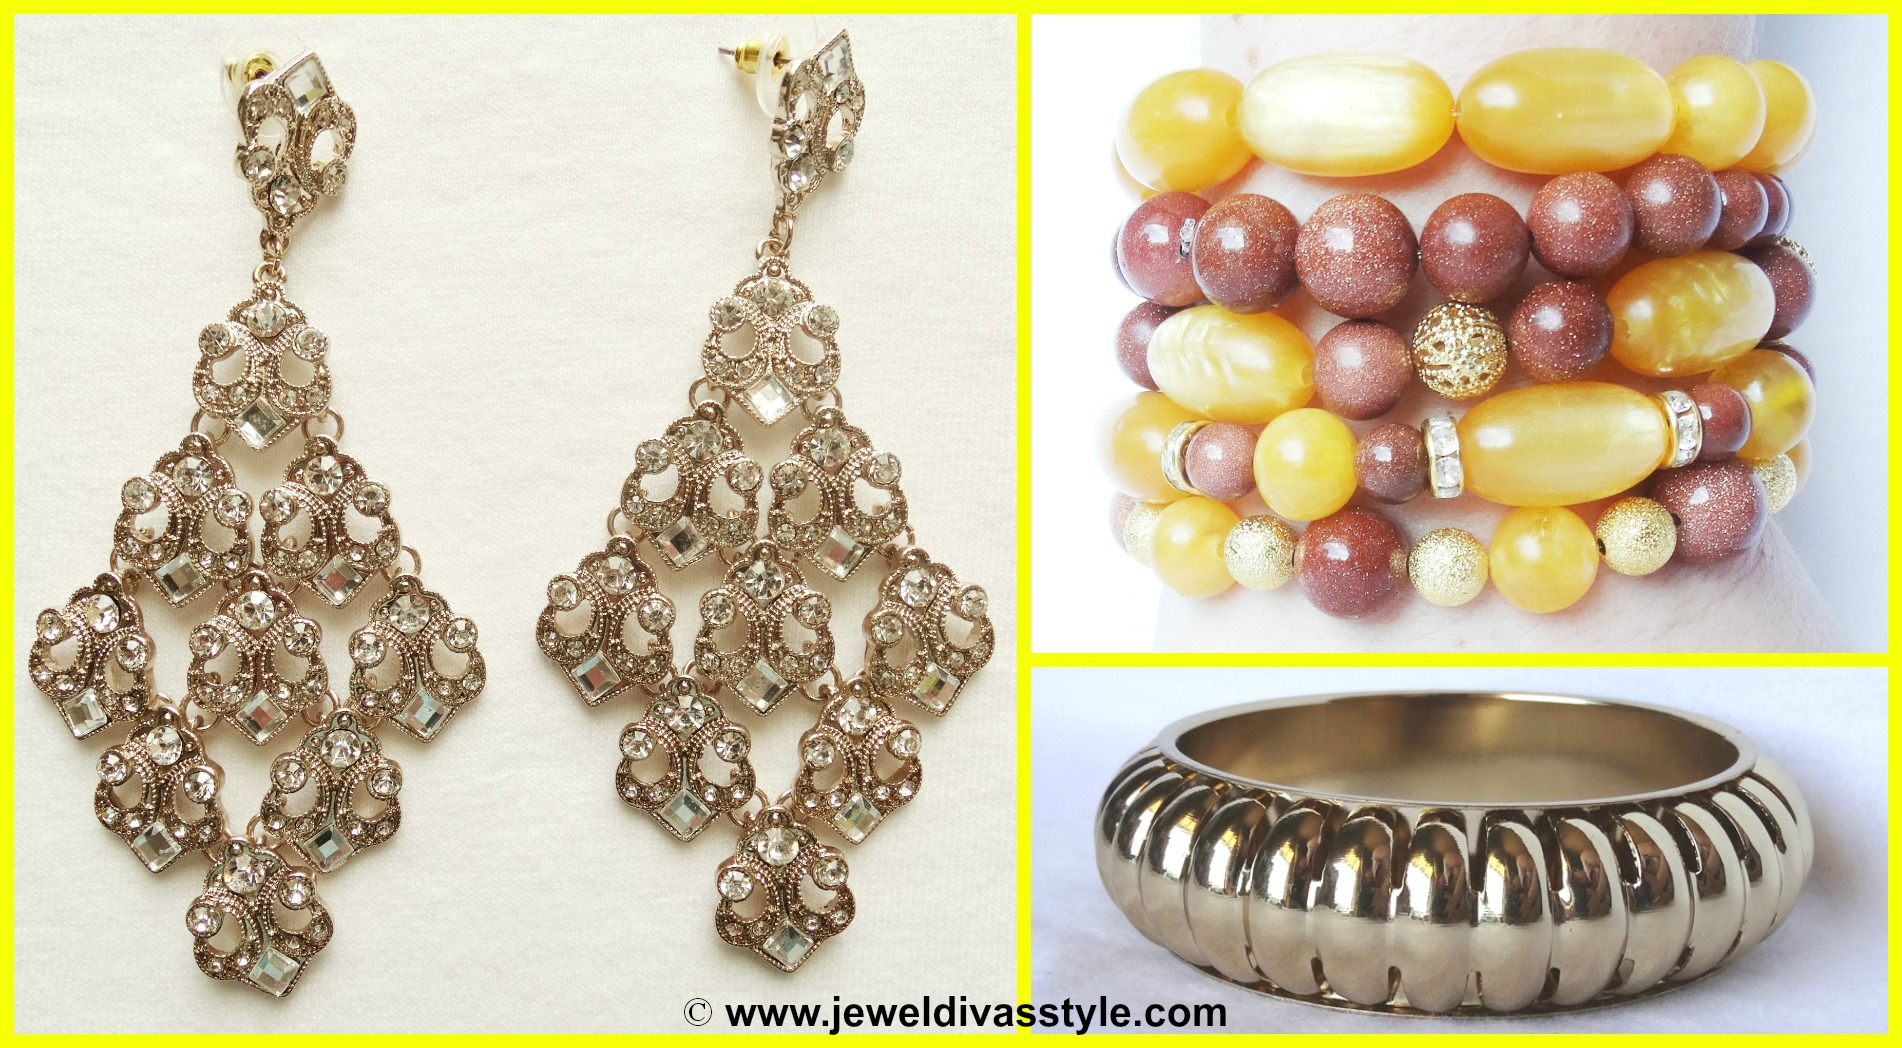 MY PERSONAL COLLECTION: New Yellow, Gold and Gold Multi jewellery